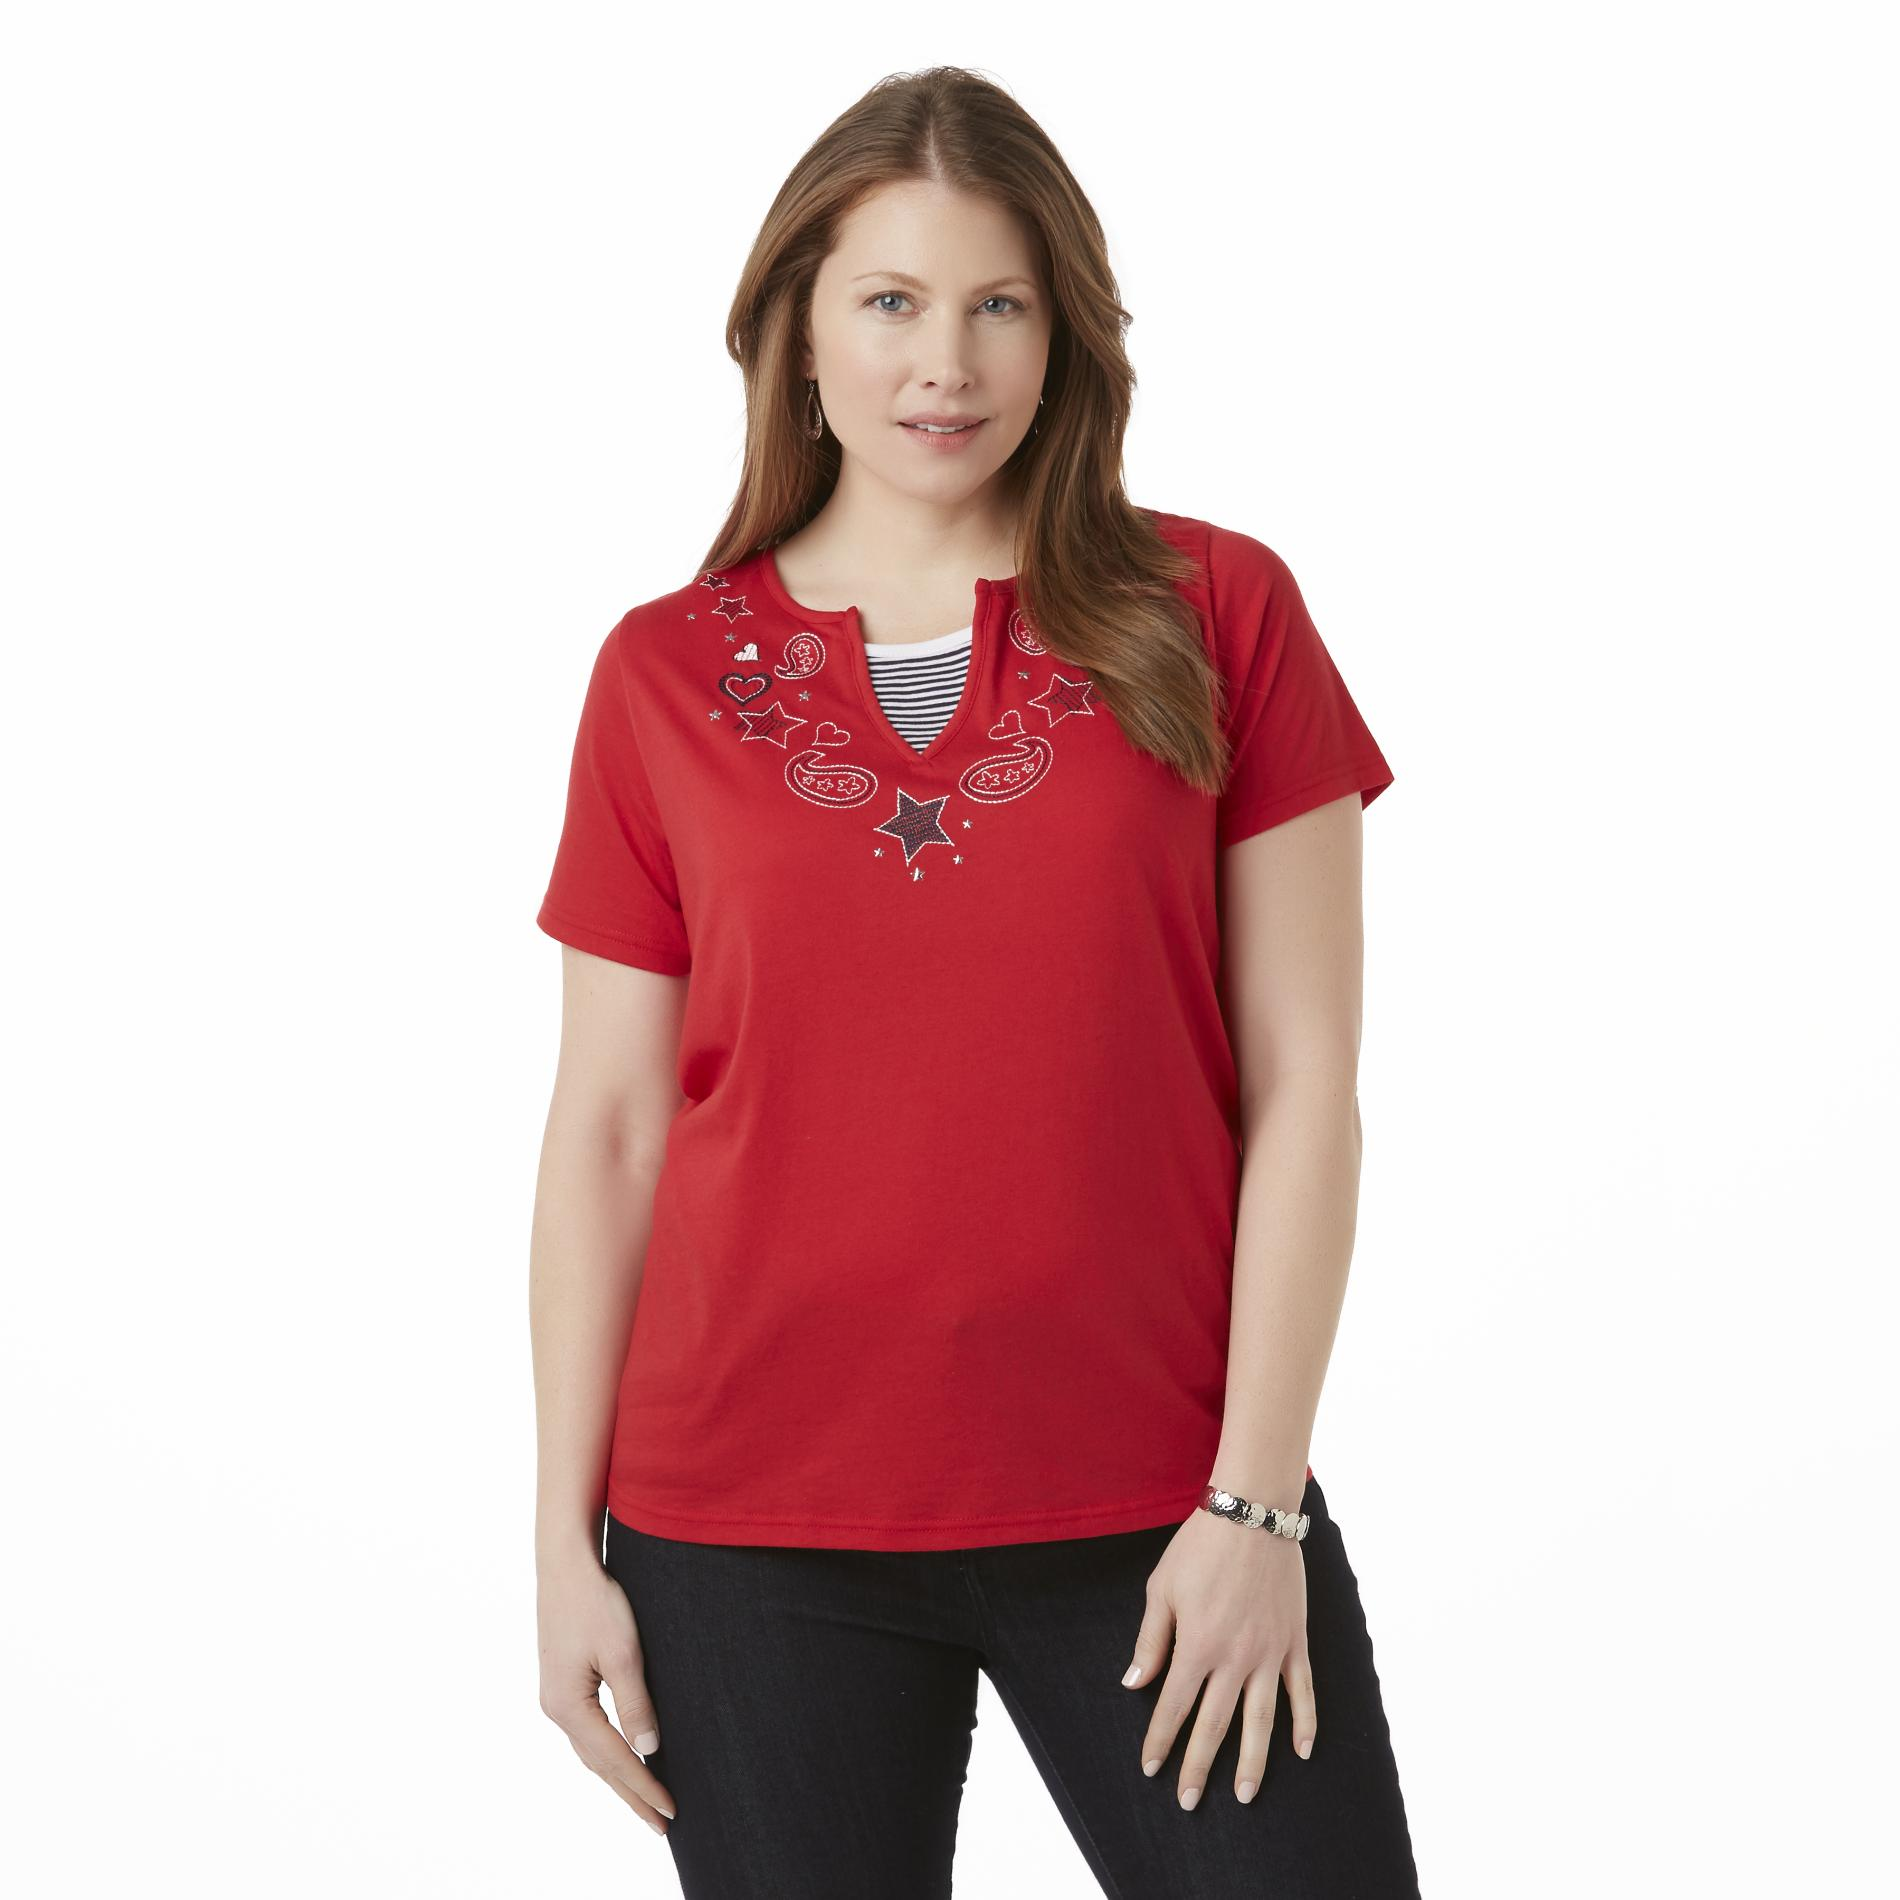 Holiday Editions Women's Plus Layered-Look T-Shirt - Handkerchief